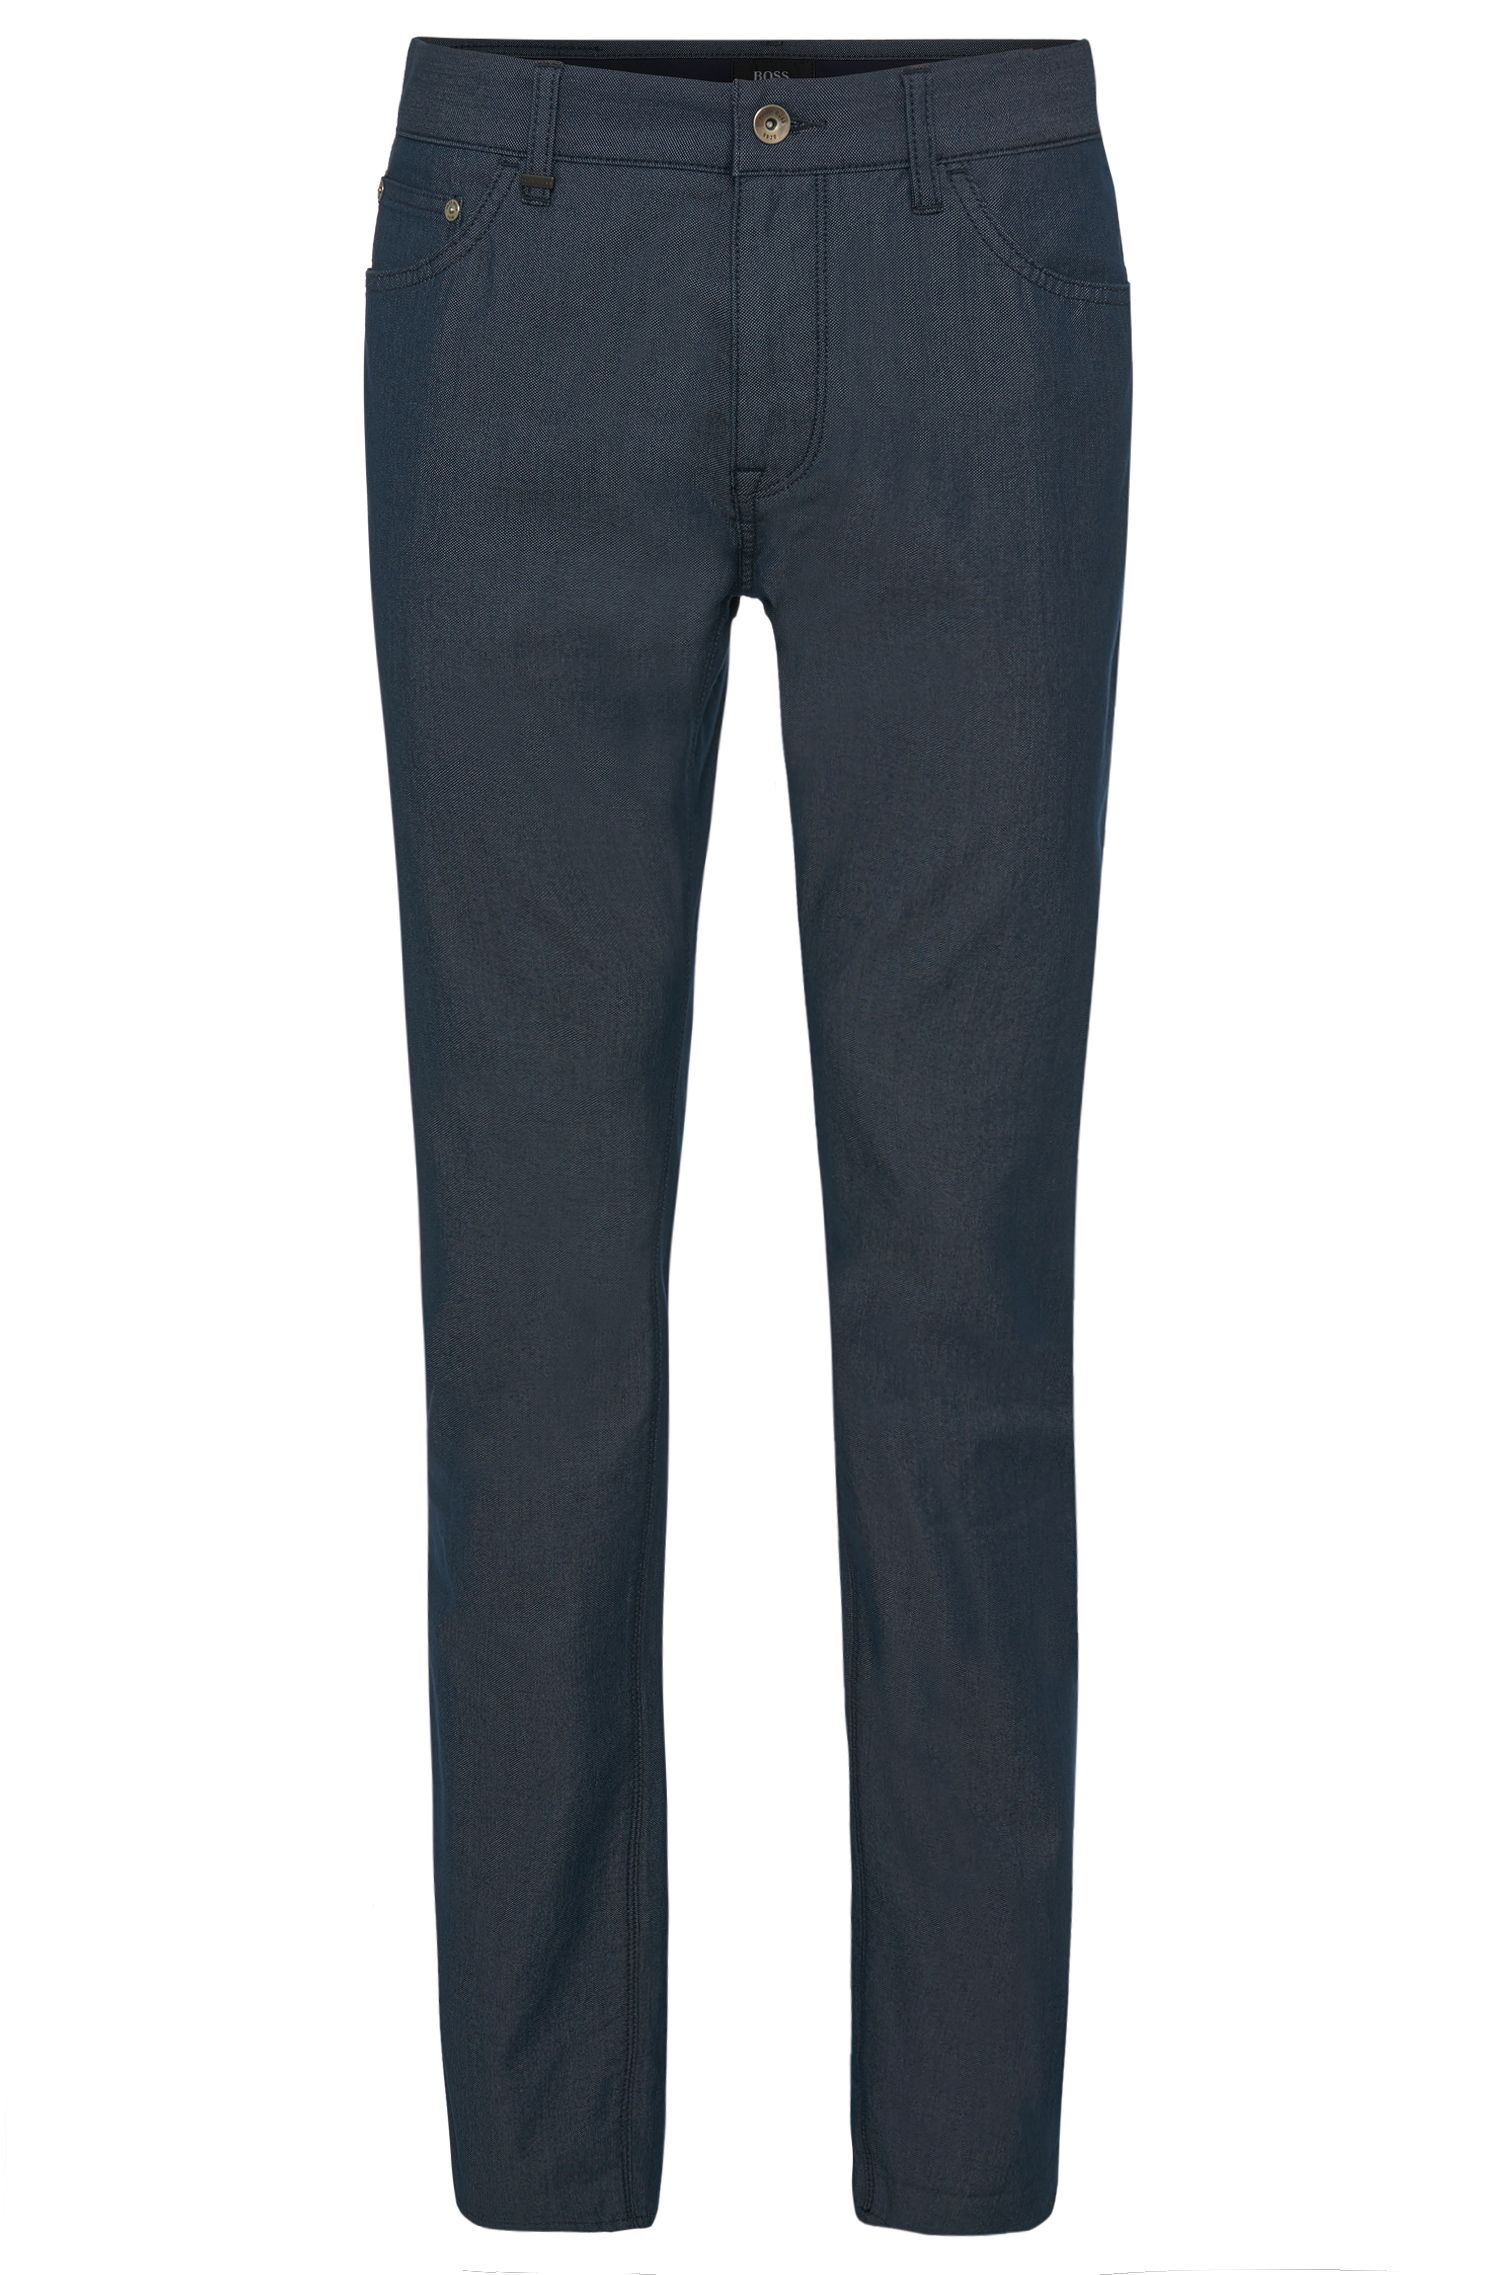 'Maine' | Regular Fit, 9.5 oz Stretch Cotton Blend Trousers